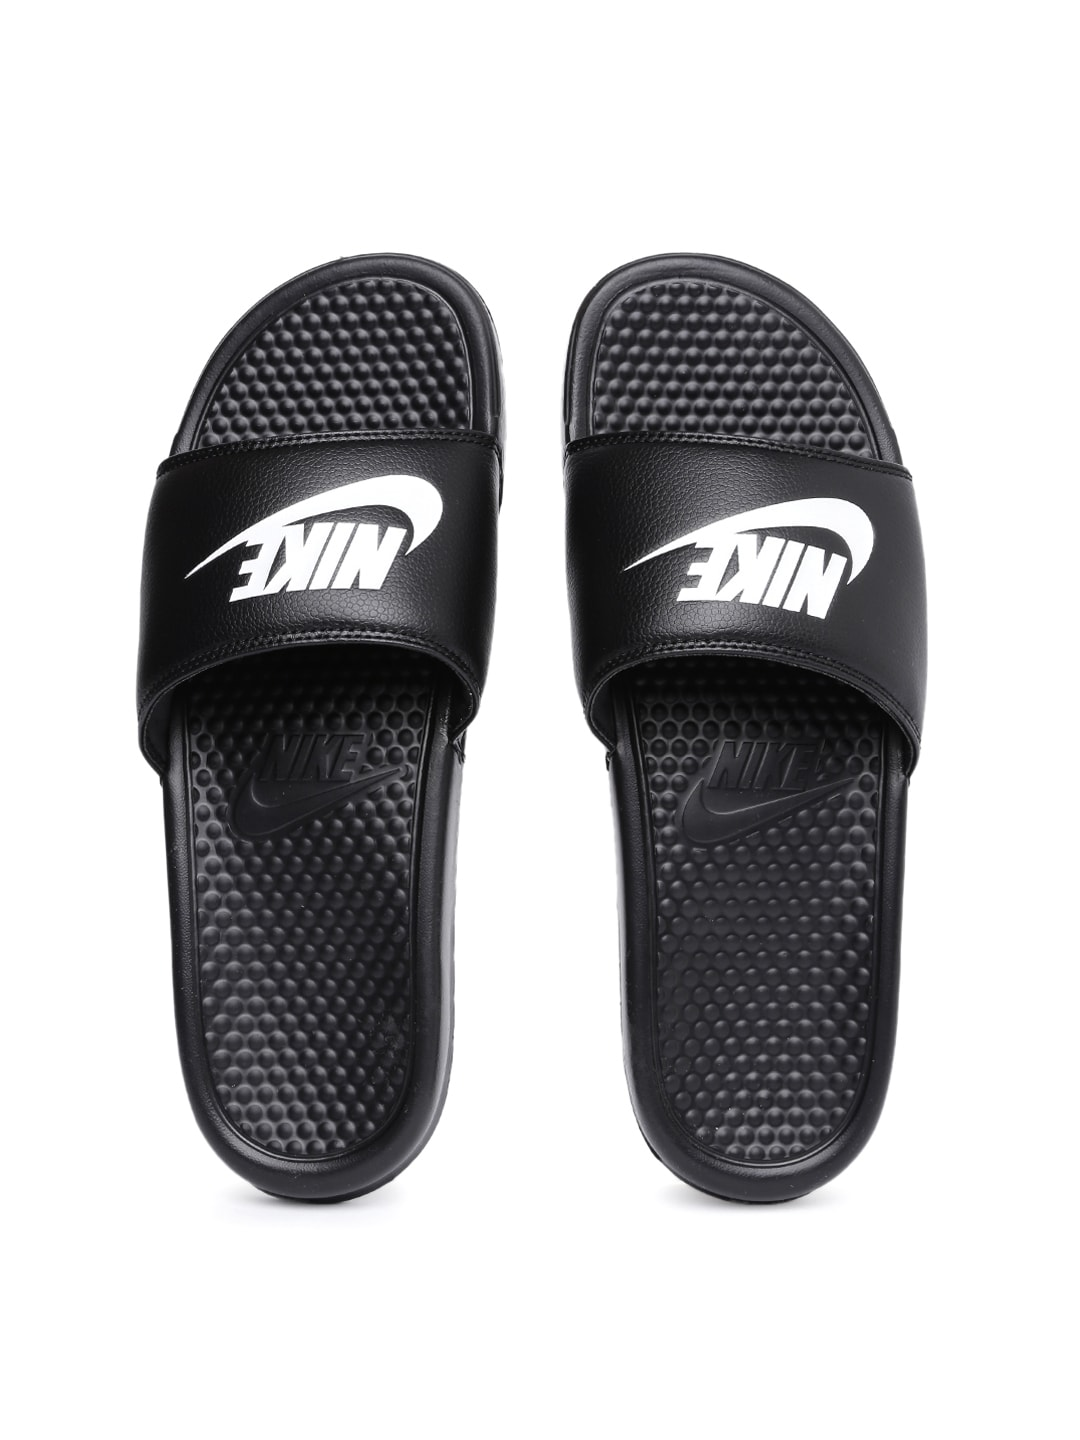 477c5a488ff22d Men s Nike Footwear - Buy Nike Footwear for Men Online in India